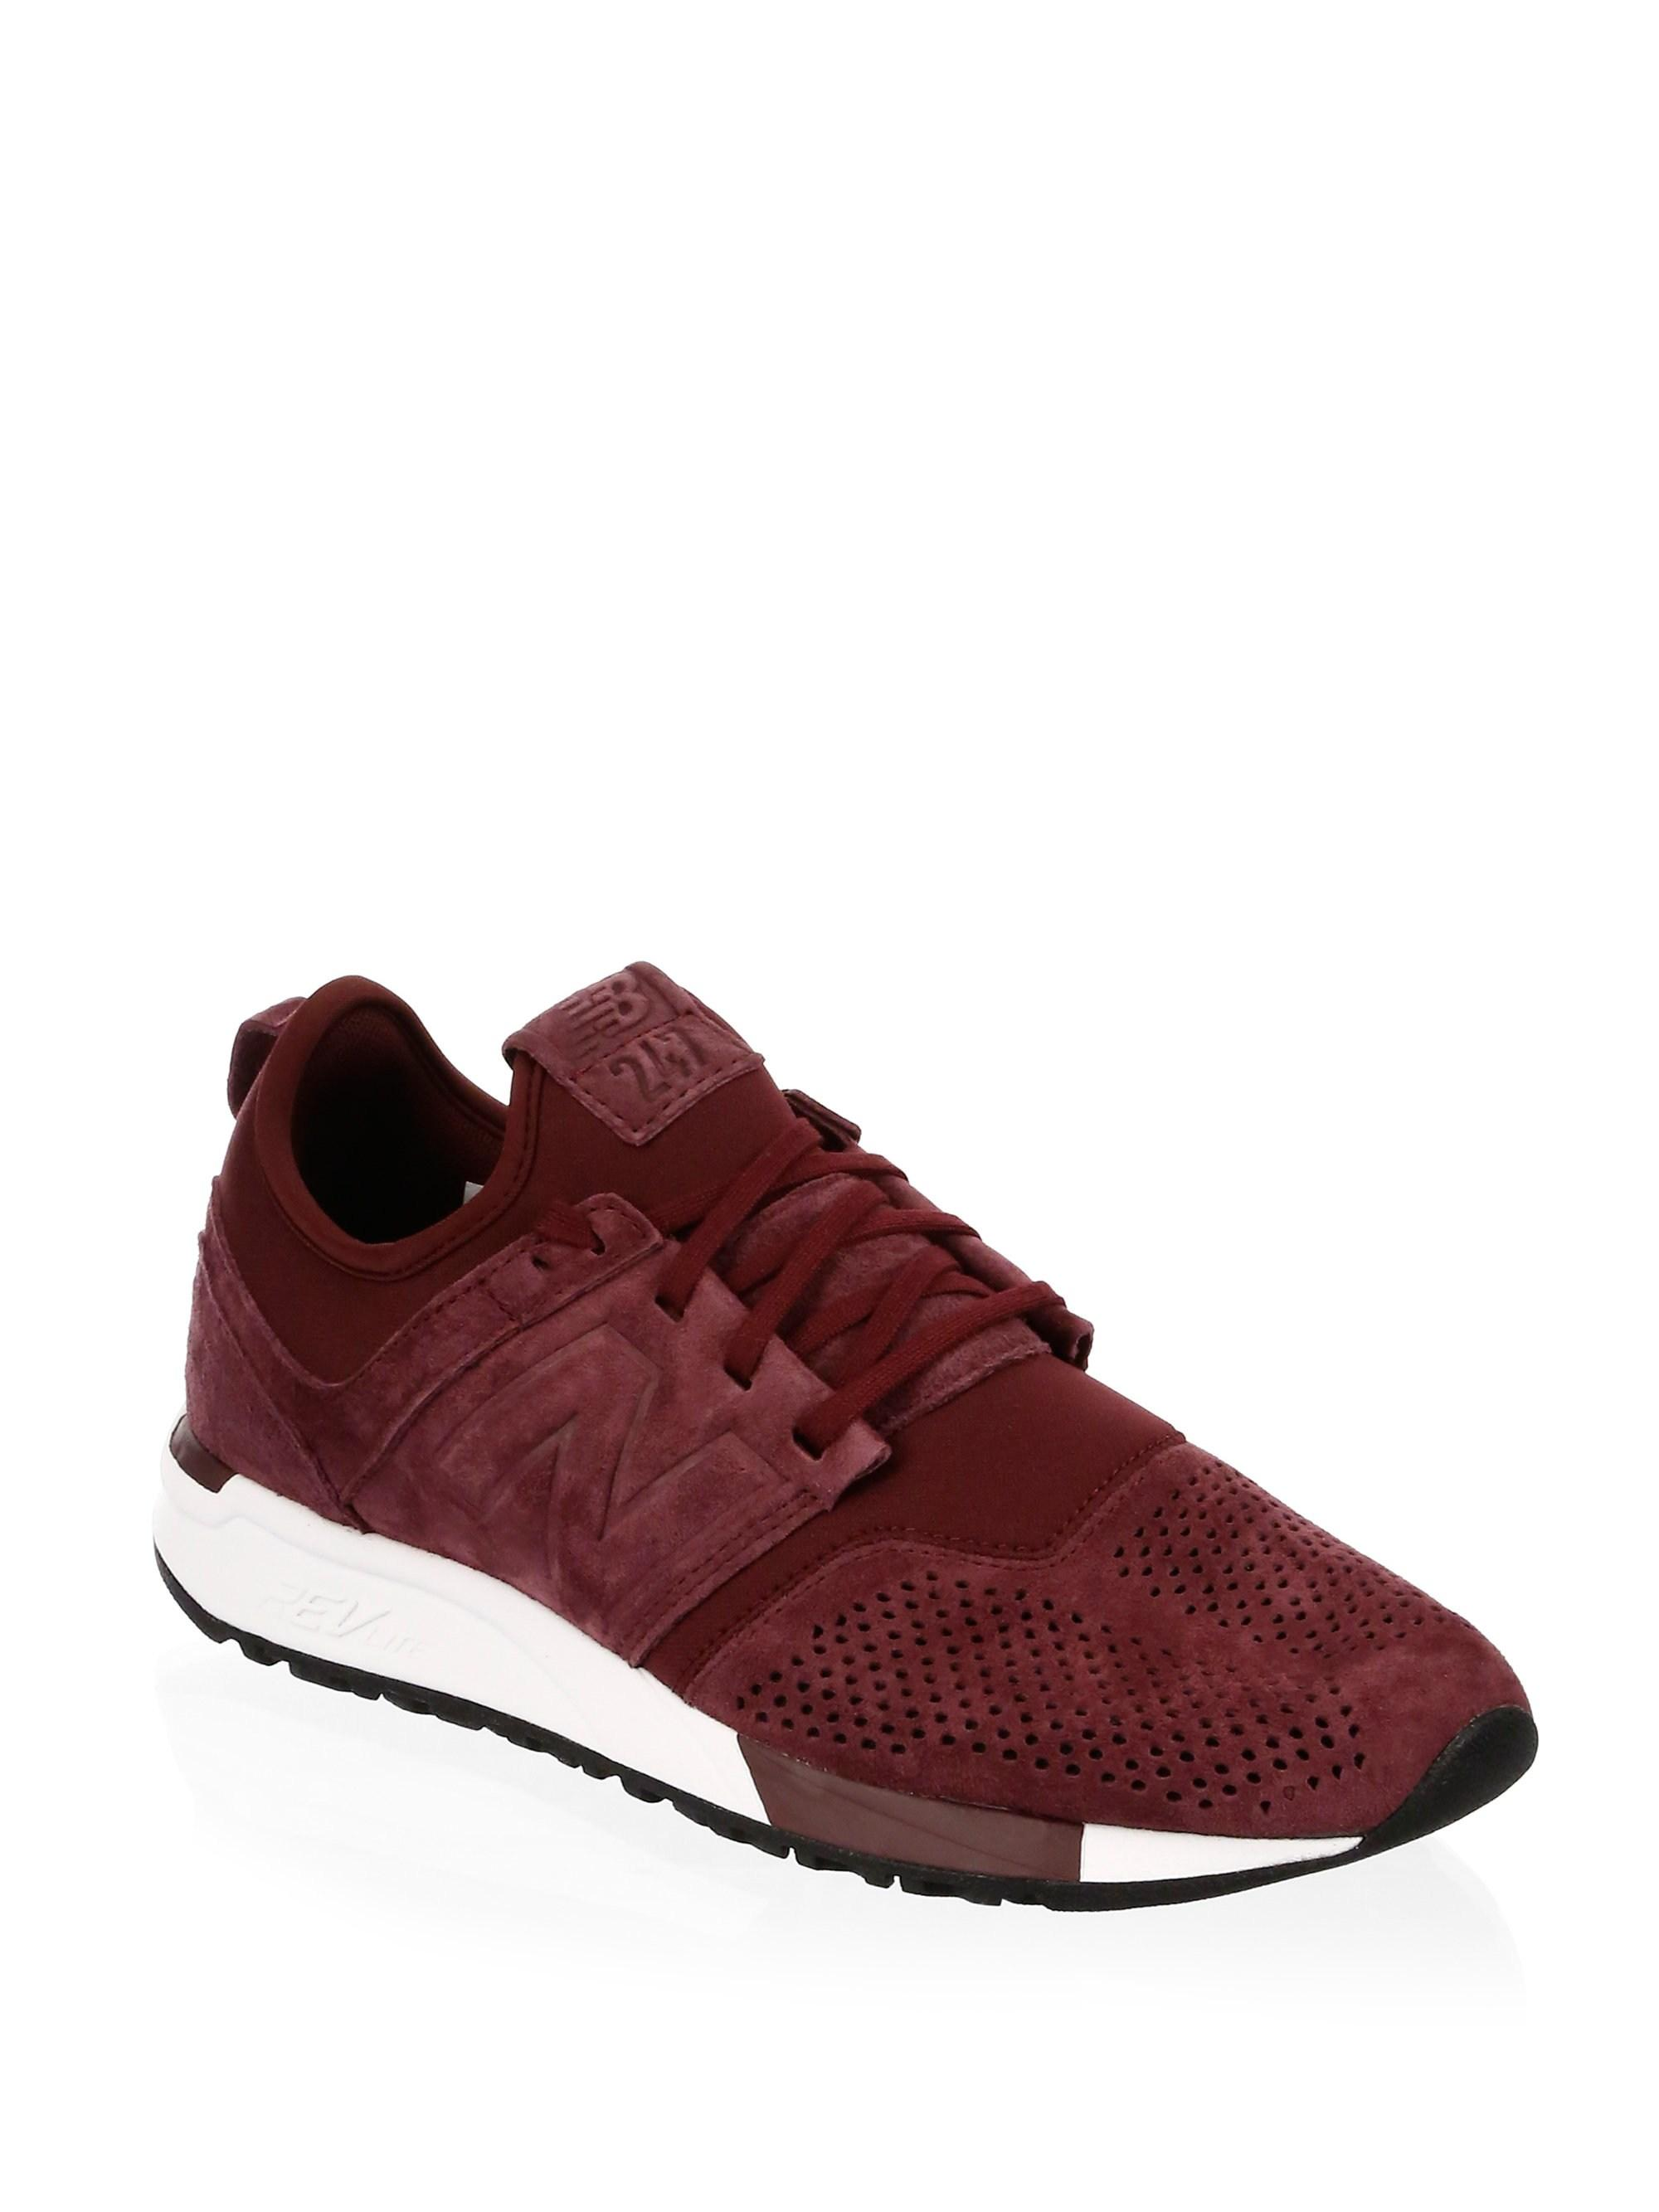 275a9a853a889 Lyst - New Balance Men's 247 Suede Casual Sneakers From Finish Line ...